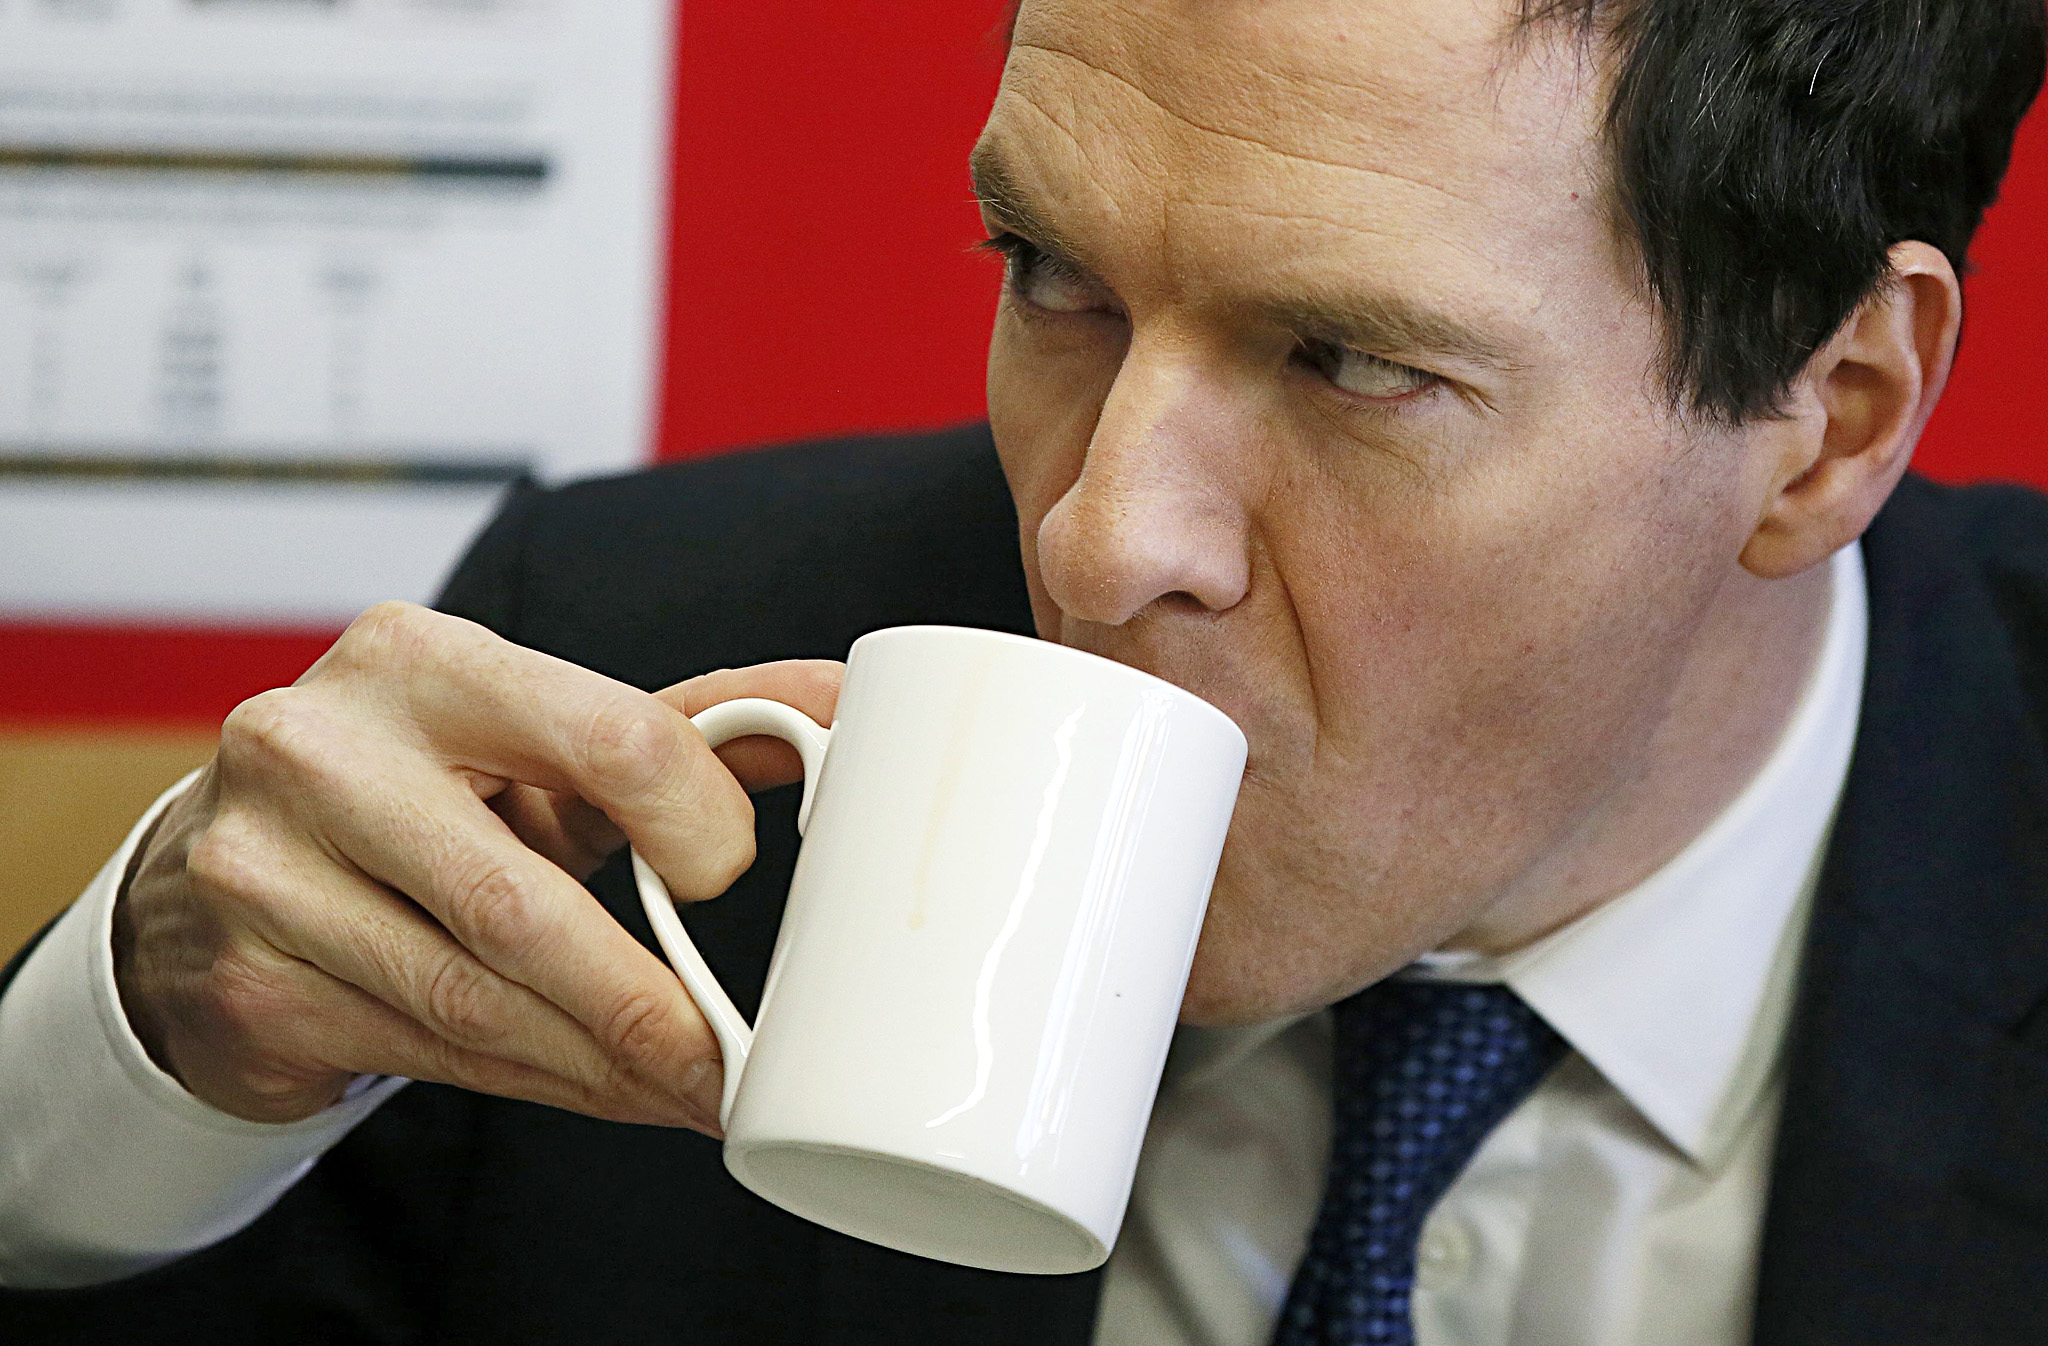 Britain's Chancellor of the Exchequer George Osborne drinks a mug of tea during a visit to the DPD parcels depot in Raunds...Britain's Chancellor of the Exchequer George Osborne drinks a mug of tea during a visit to the DPD parcels depot in Raunds, Britain May 6, 2015. Britain will go to the polls in a national election on May 7. REUTERS/Phil Noble